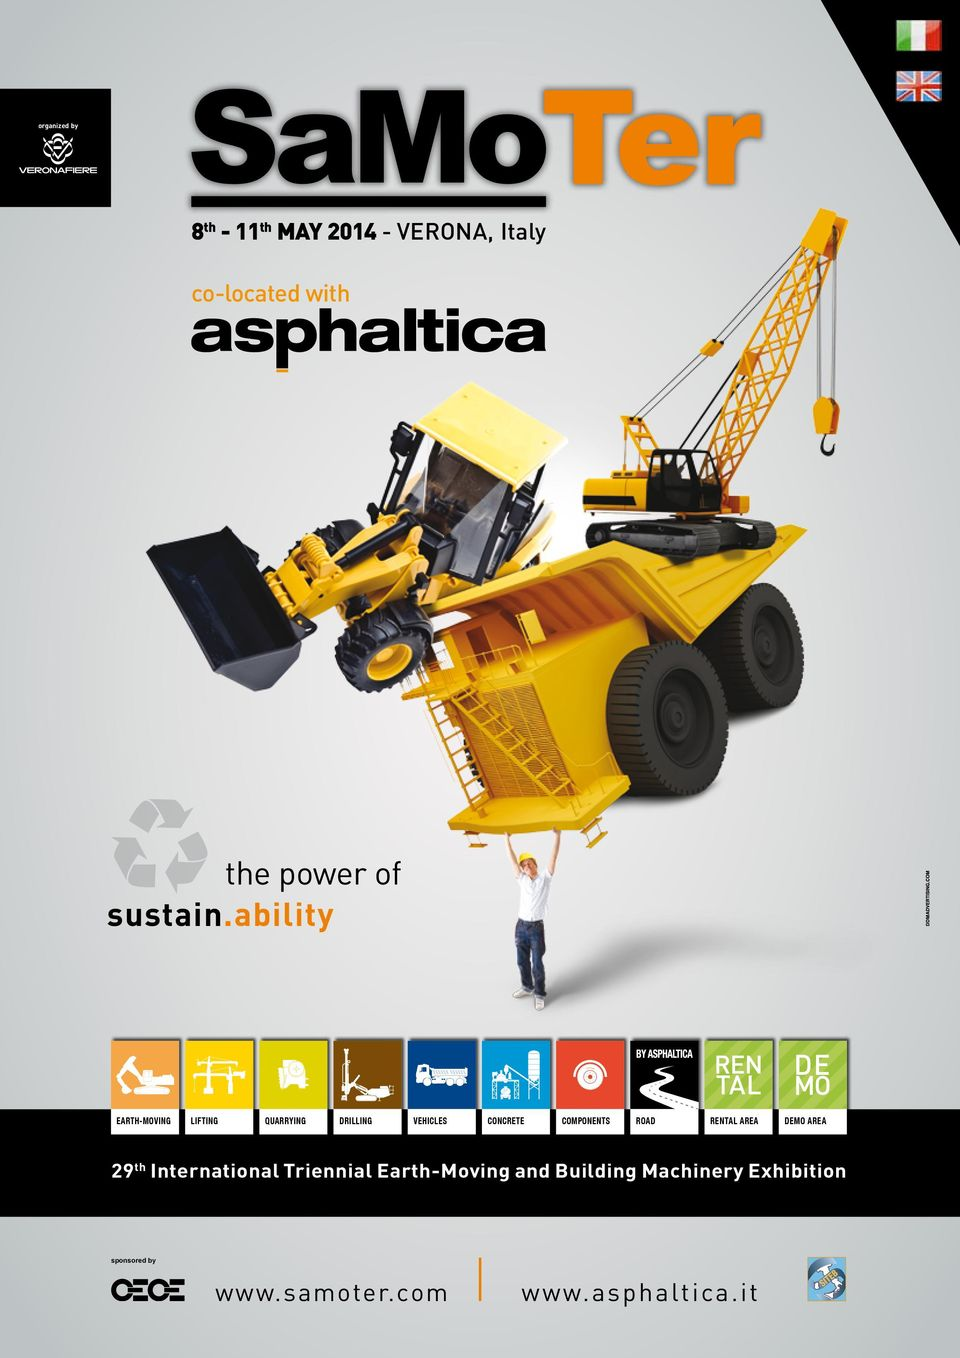 ability EARTH-MOVING LIFTING QUARRYING DRILLING VEHICLES CONCRETE COMPONENTS